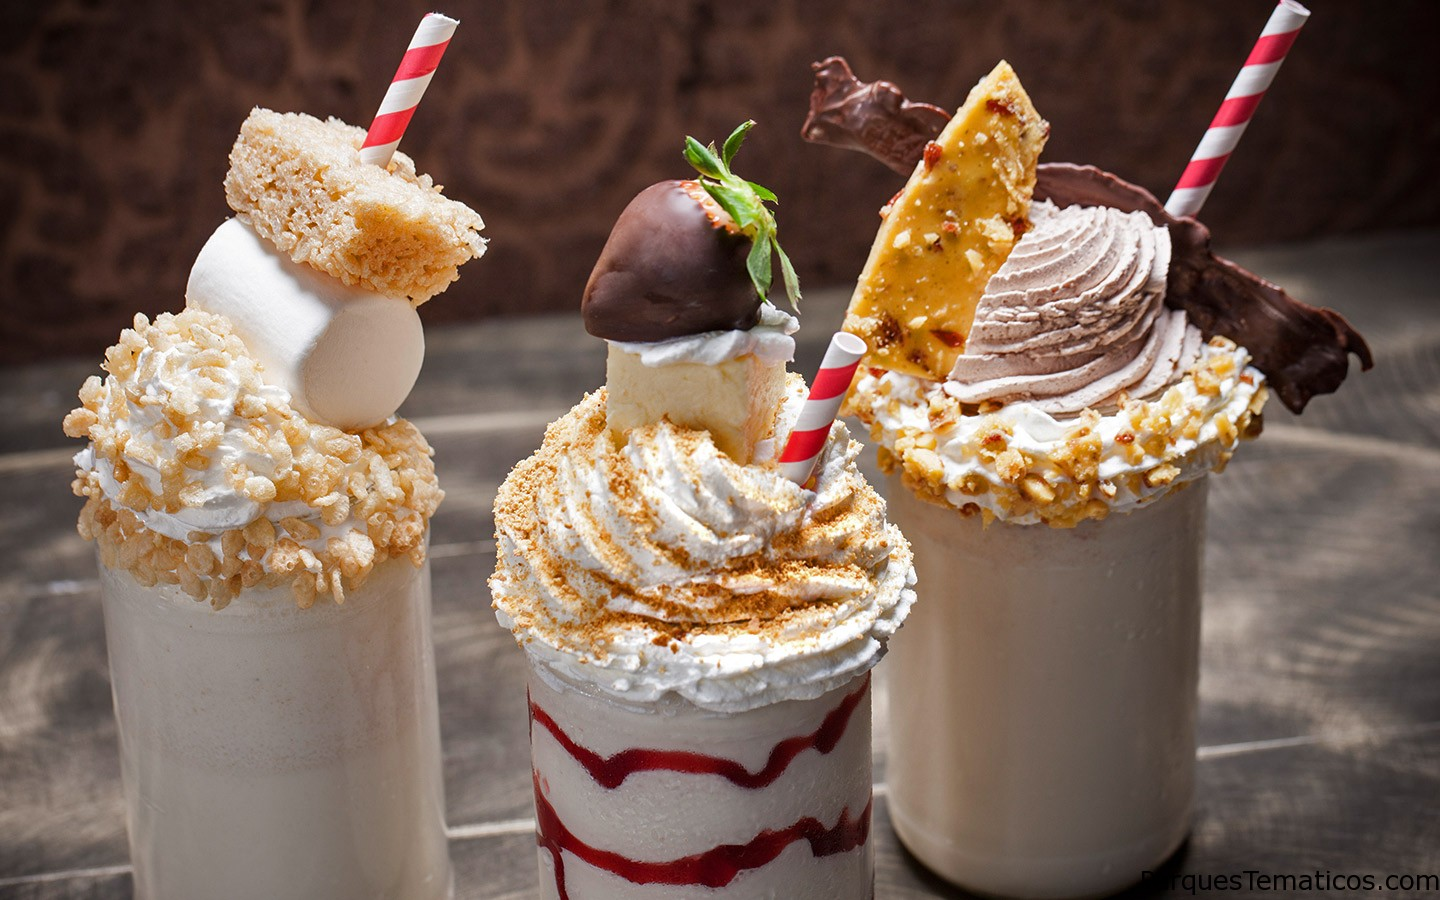 Postres Toothsome Chocolate Factory en CityWalk